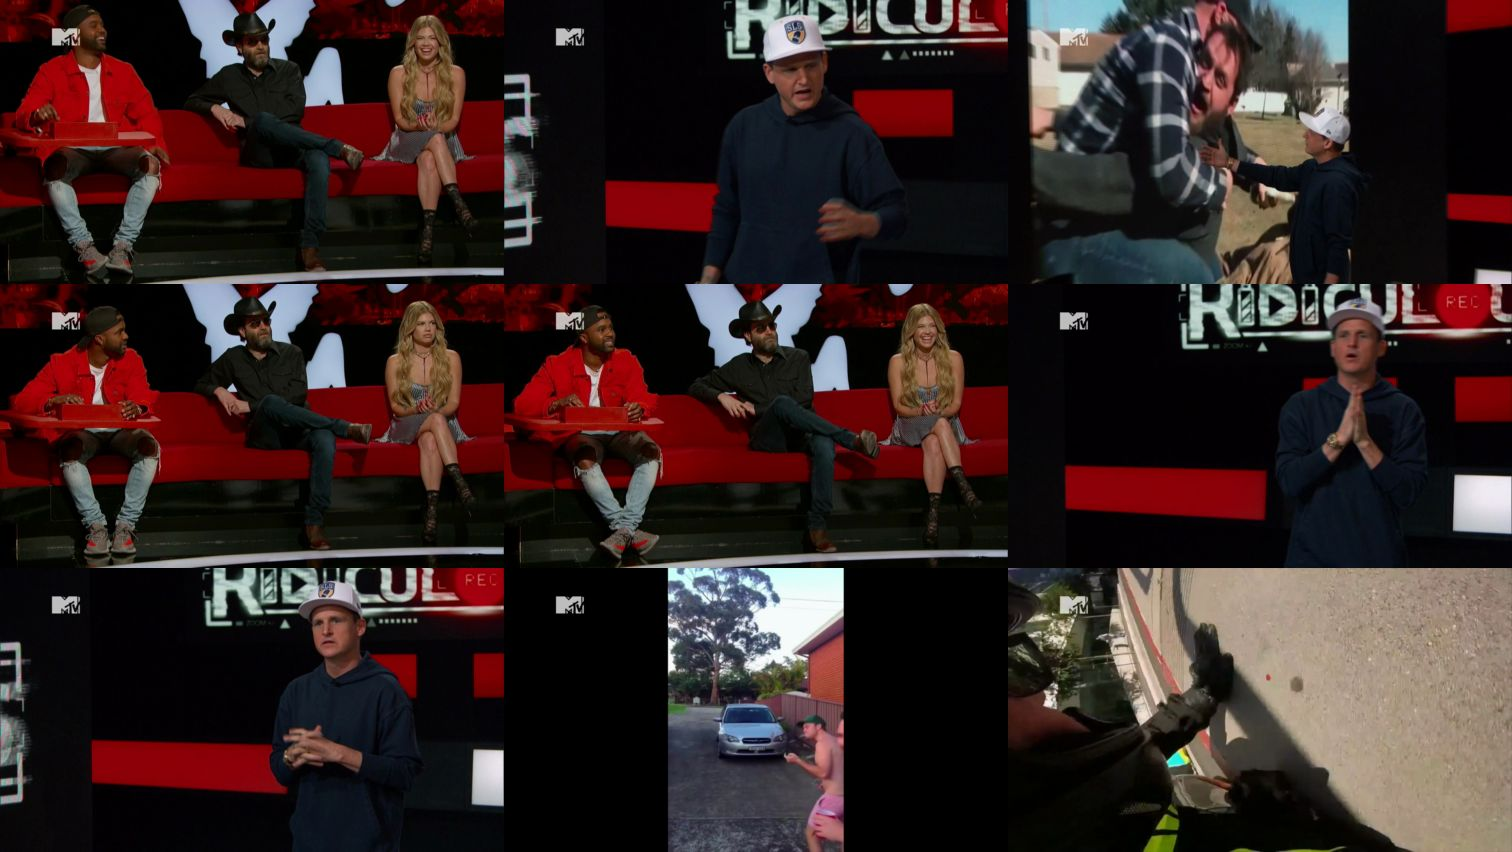 Download Ridiculousness S10E28 720p WEB h264-KLINGON[rartv] Torrent